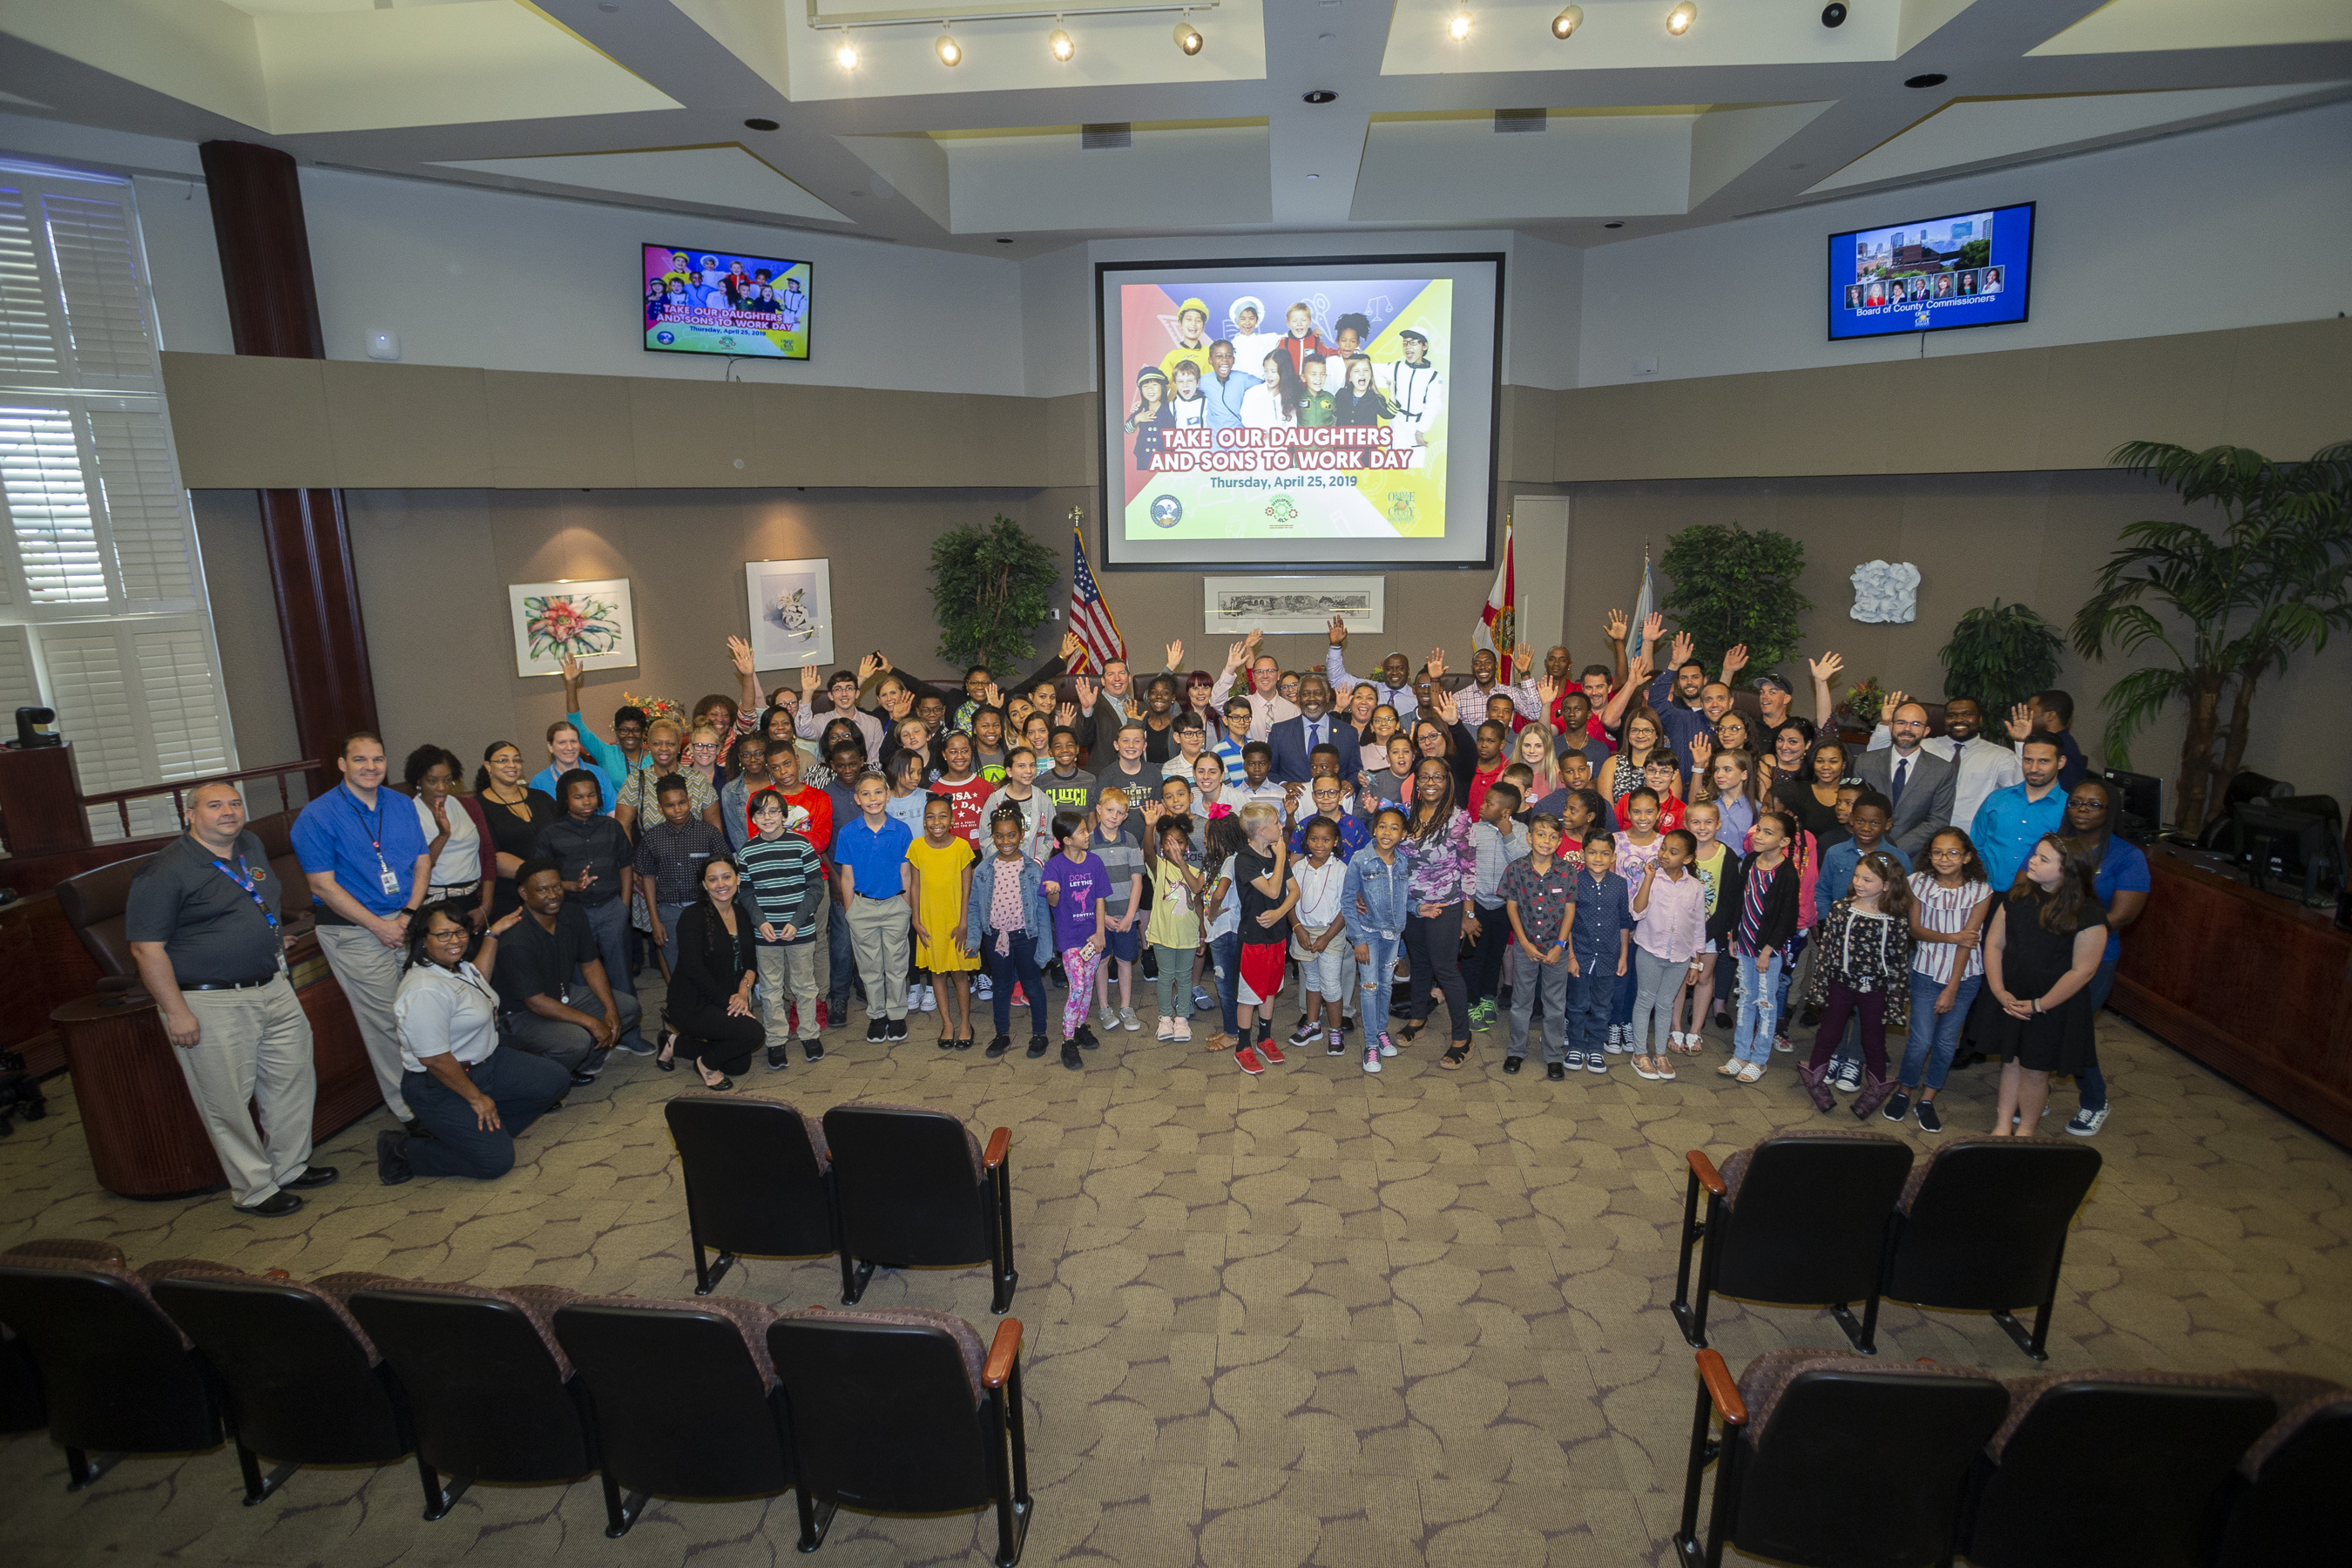 A group photo of children and orange county staff in the Board of County Commissioner's chambers. Mayor Demings is standing in the middle of the crowd of smiling children.